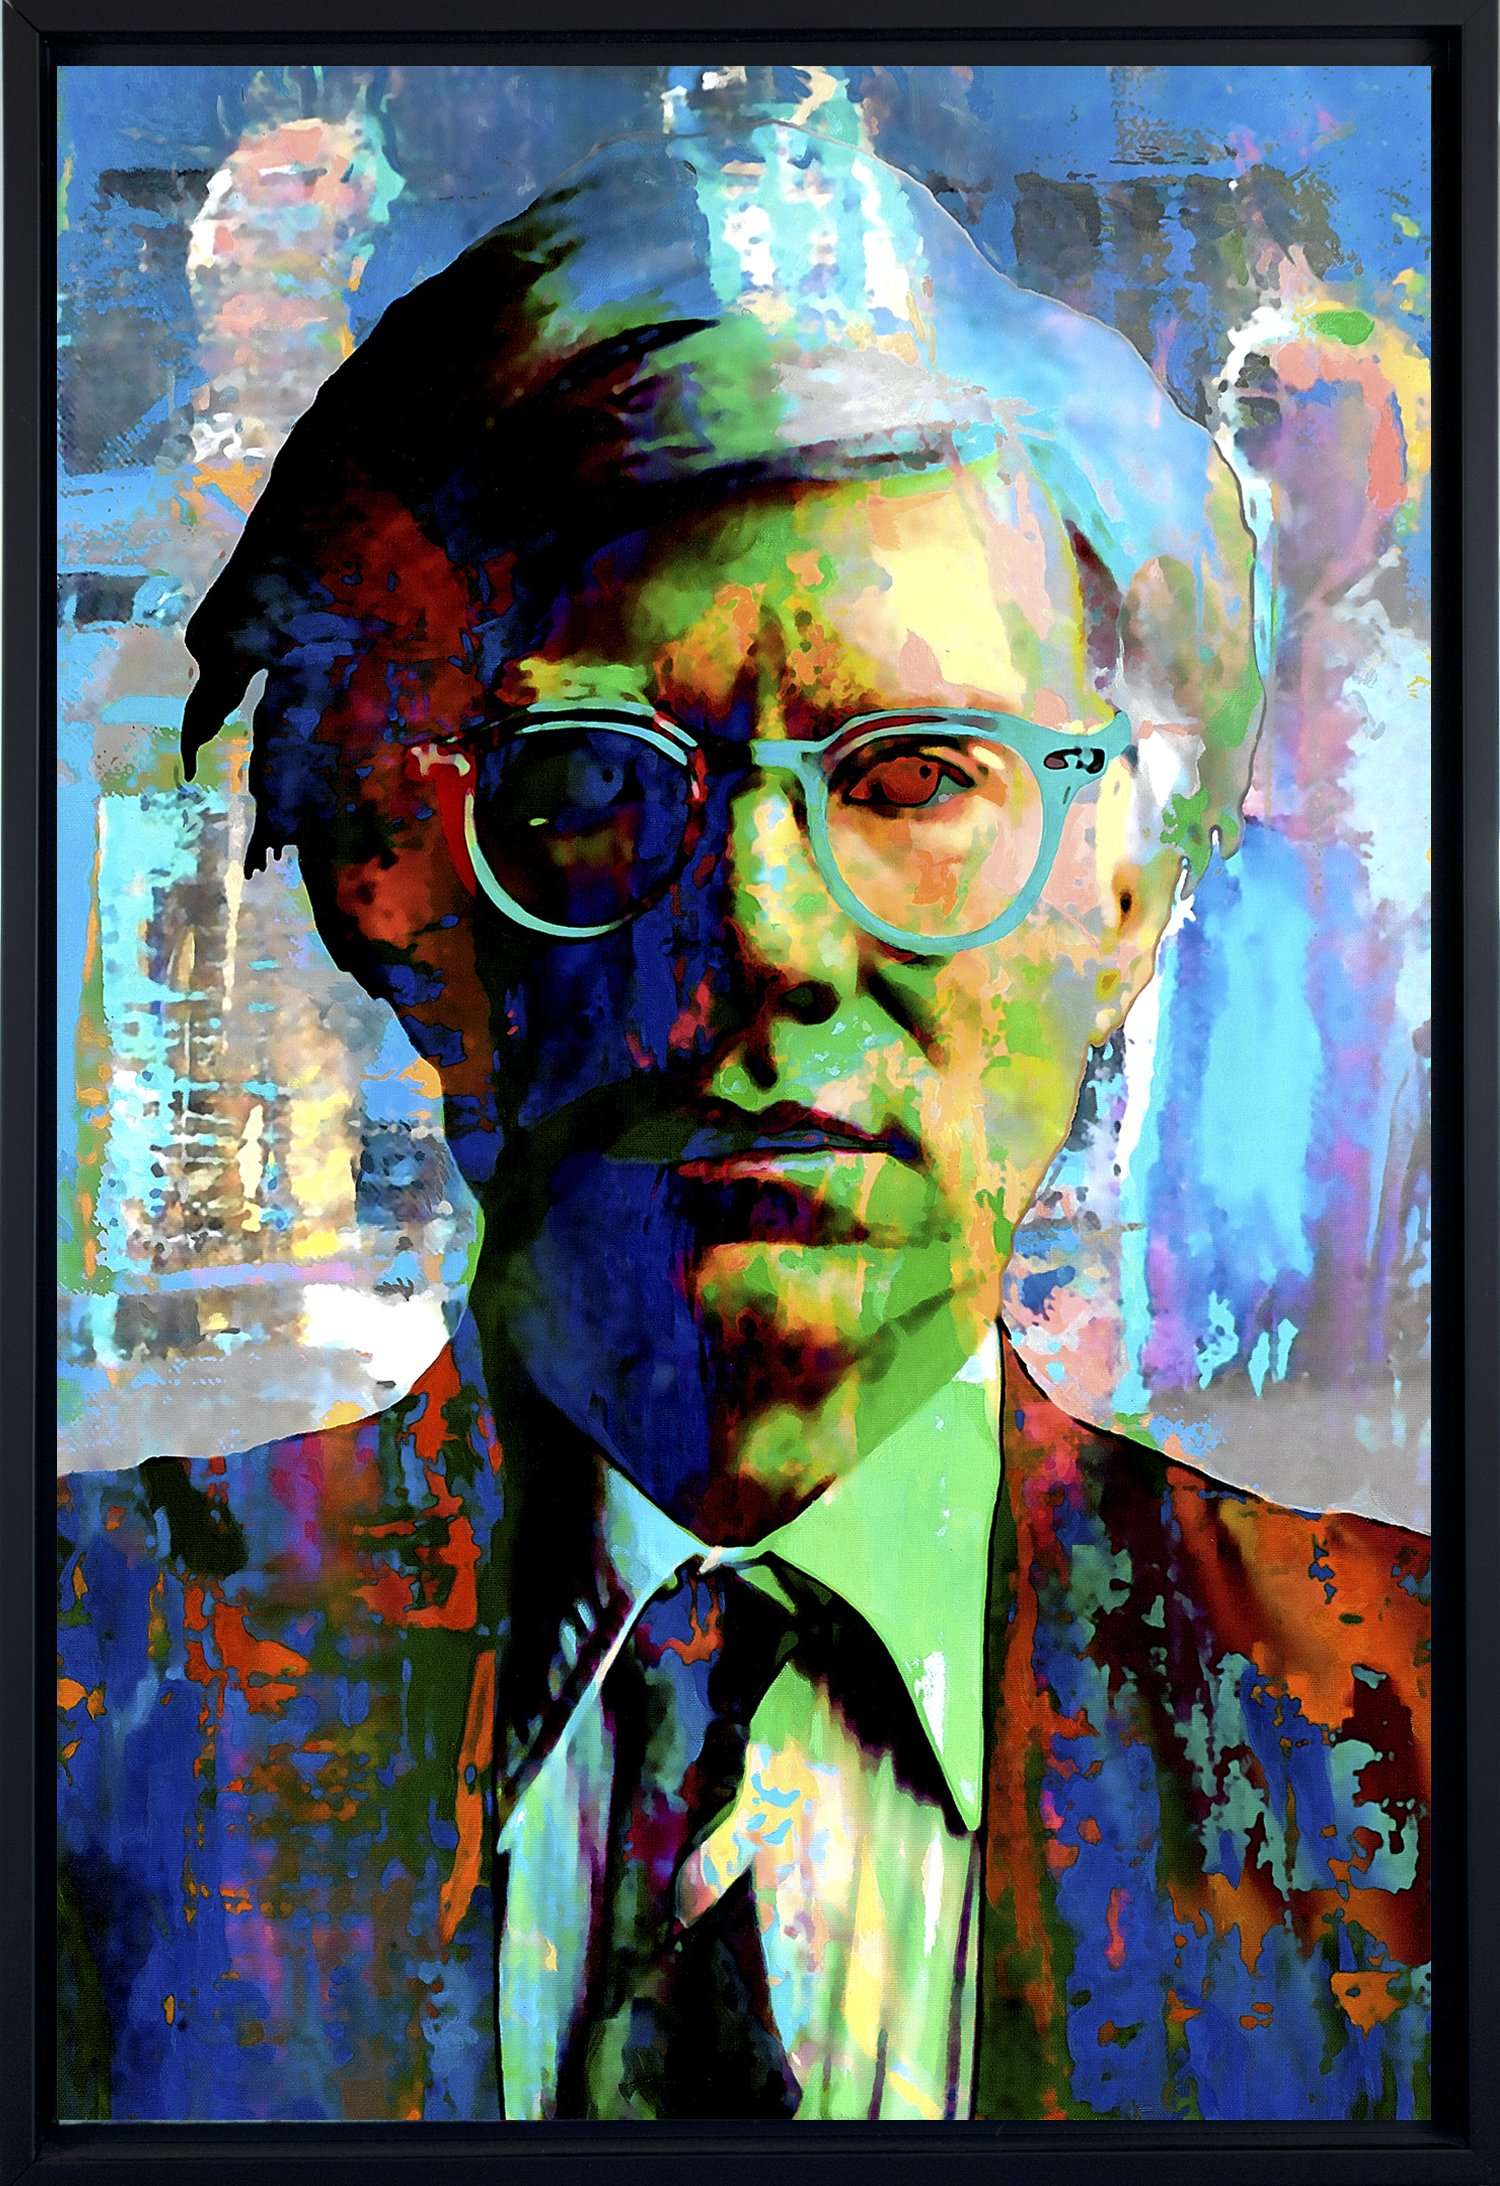 Andy Warhol art prints wall decor - framed canvas art by Mark Lewis Art - fwm - Living descendant of Cy Young the baseball legend by Mark Lewis Art